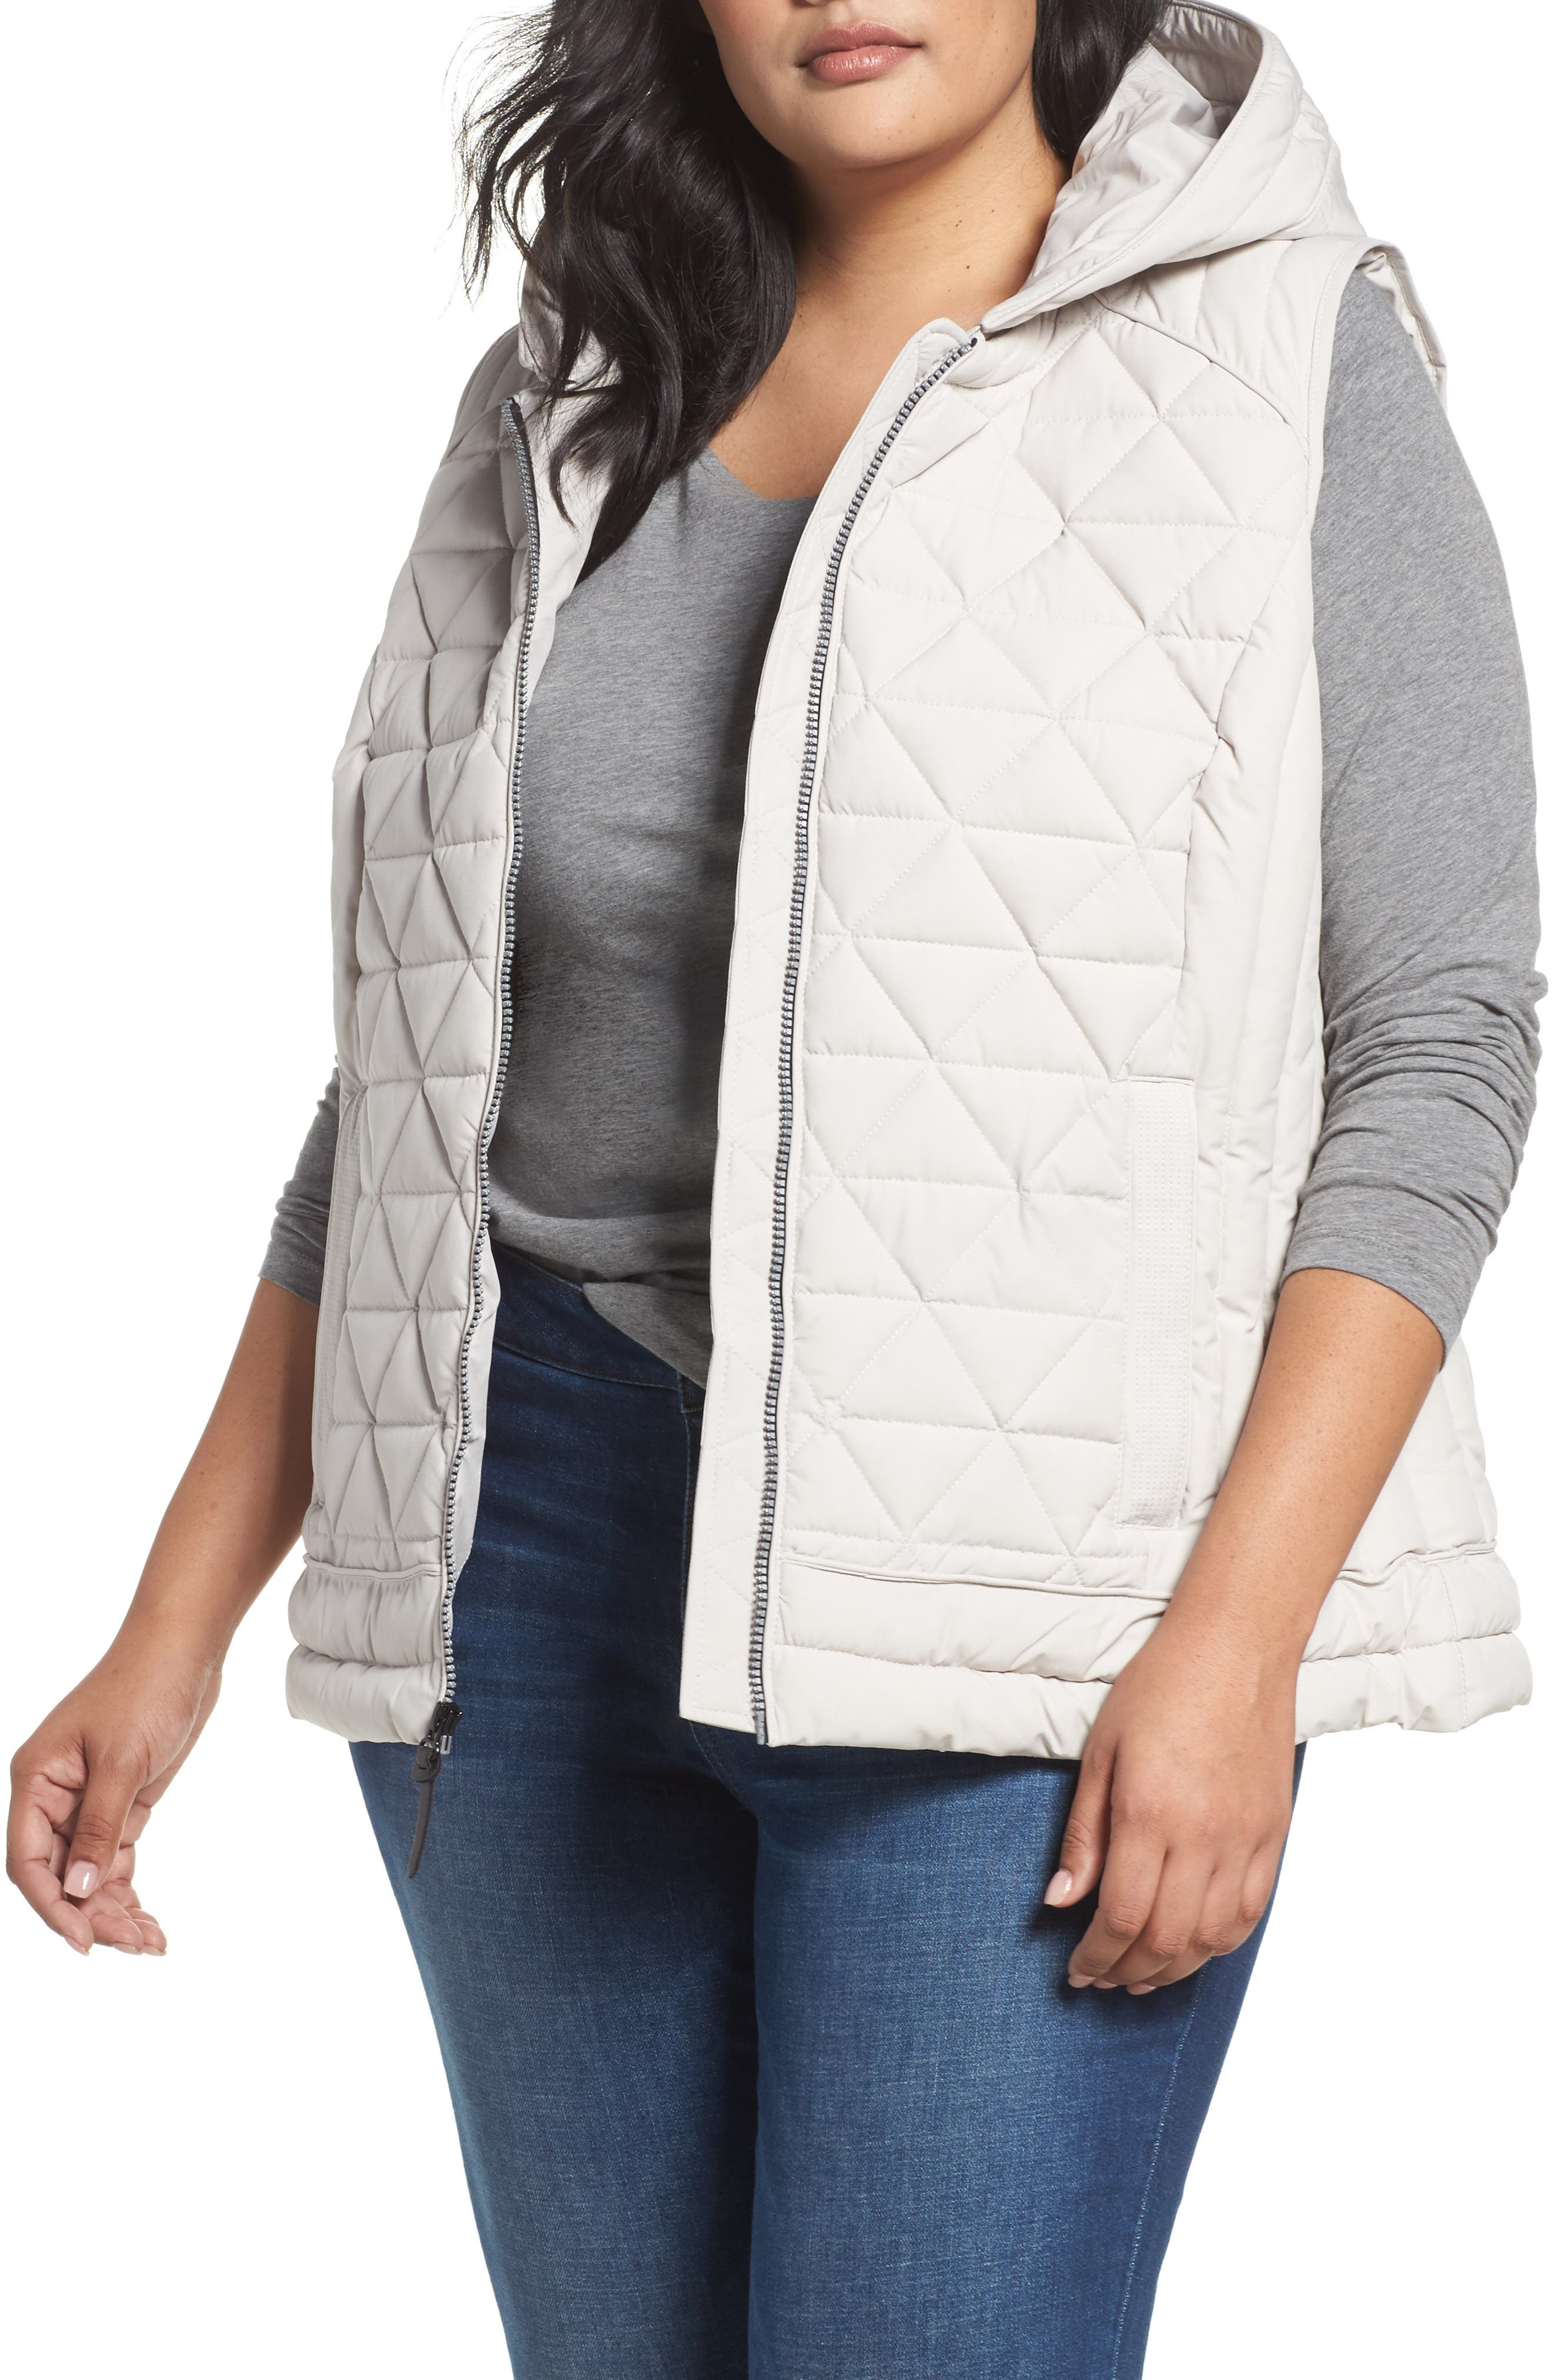 Alternate Image 1 Selected - Andrew Marc Sage Quilted Vest (Plus Size)